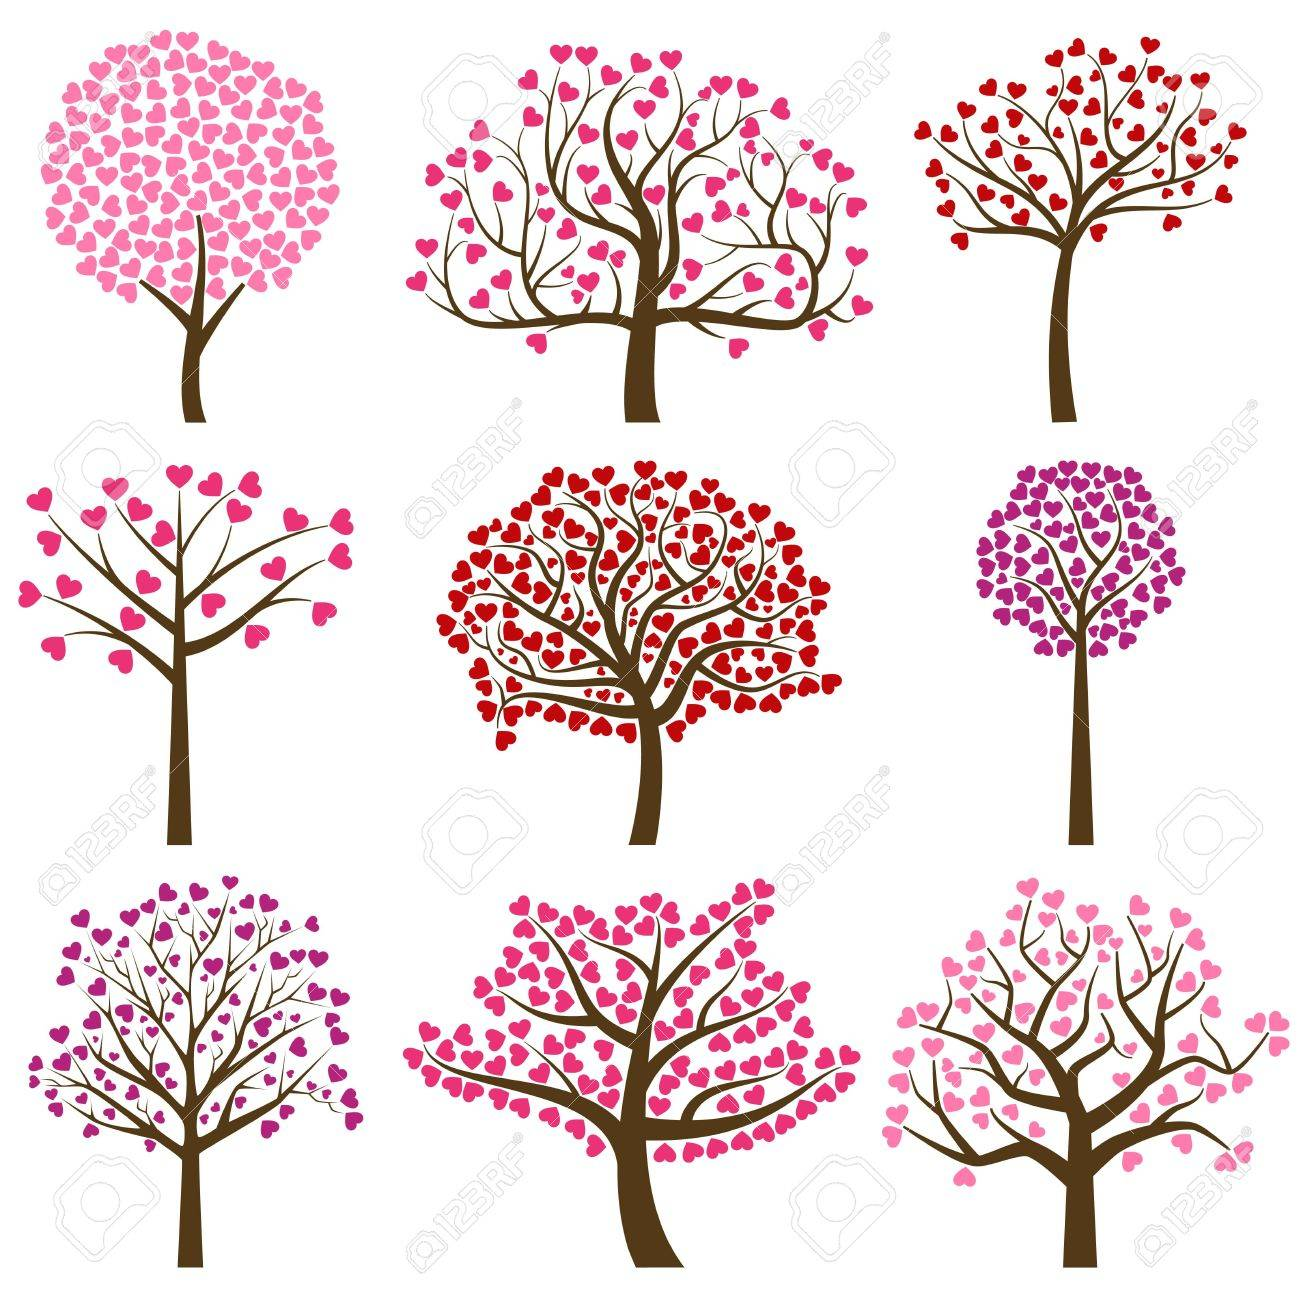 Valentines day tree silhouettes with heart shaped leaves vector valentines day tree silhouettes with heart shaped leaves vector format stock vector 69471778 mightylinksfo